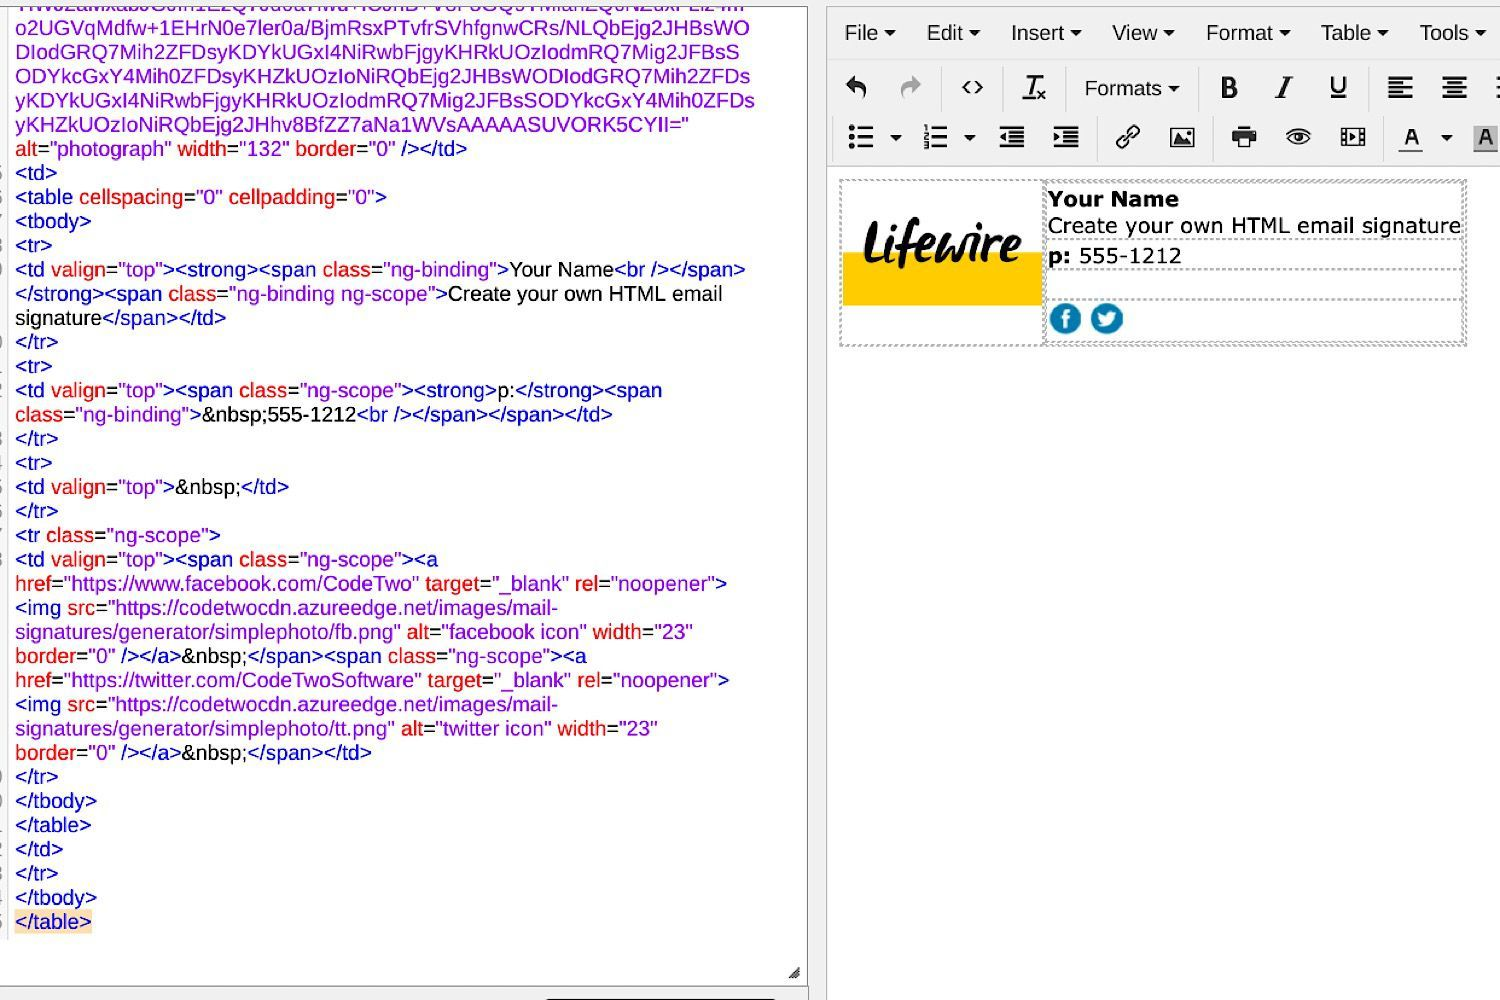 How to Create and Add an HTML Email Signature for Gmail